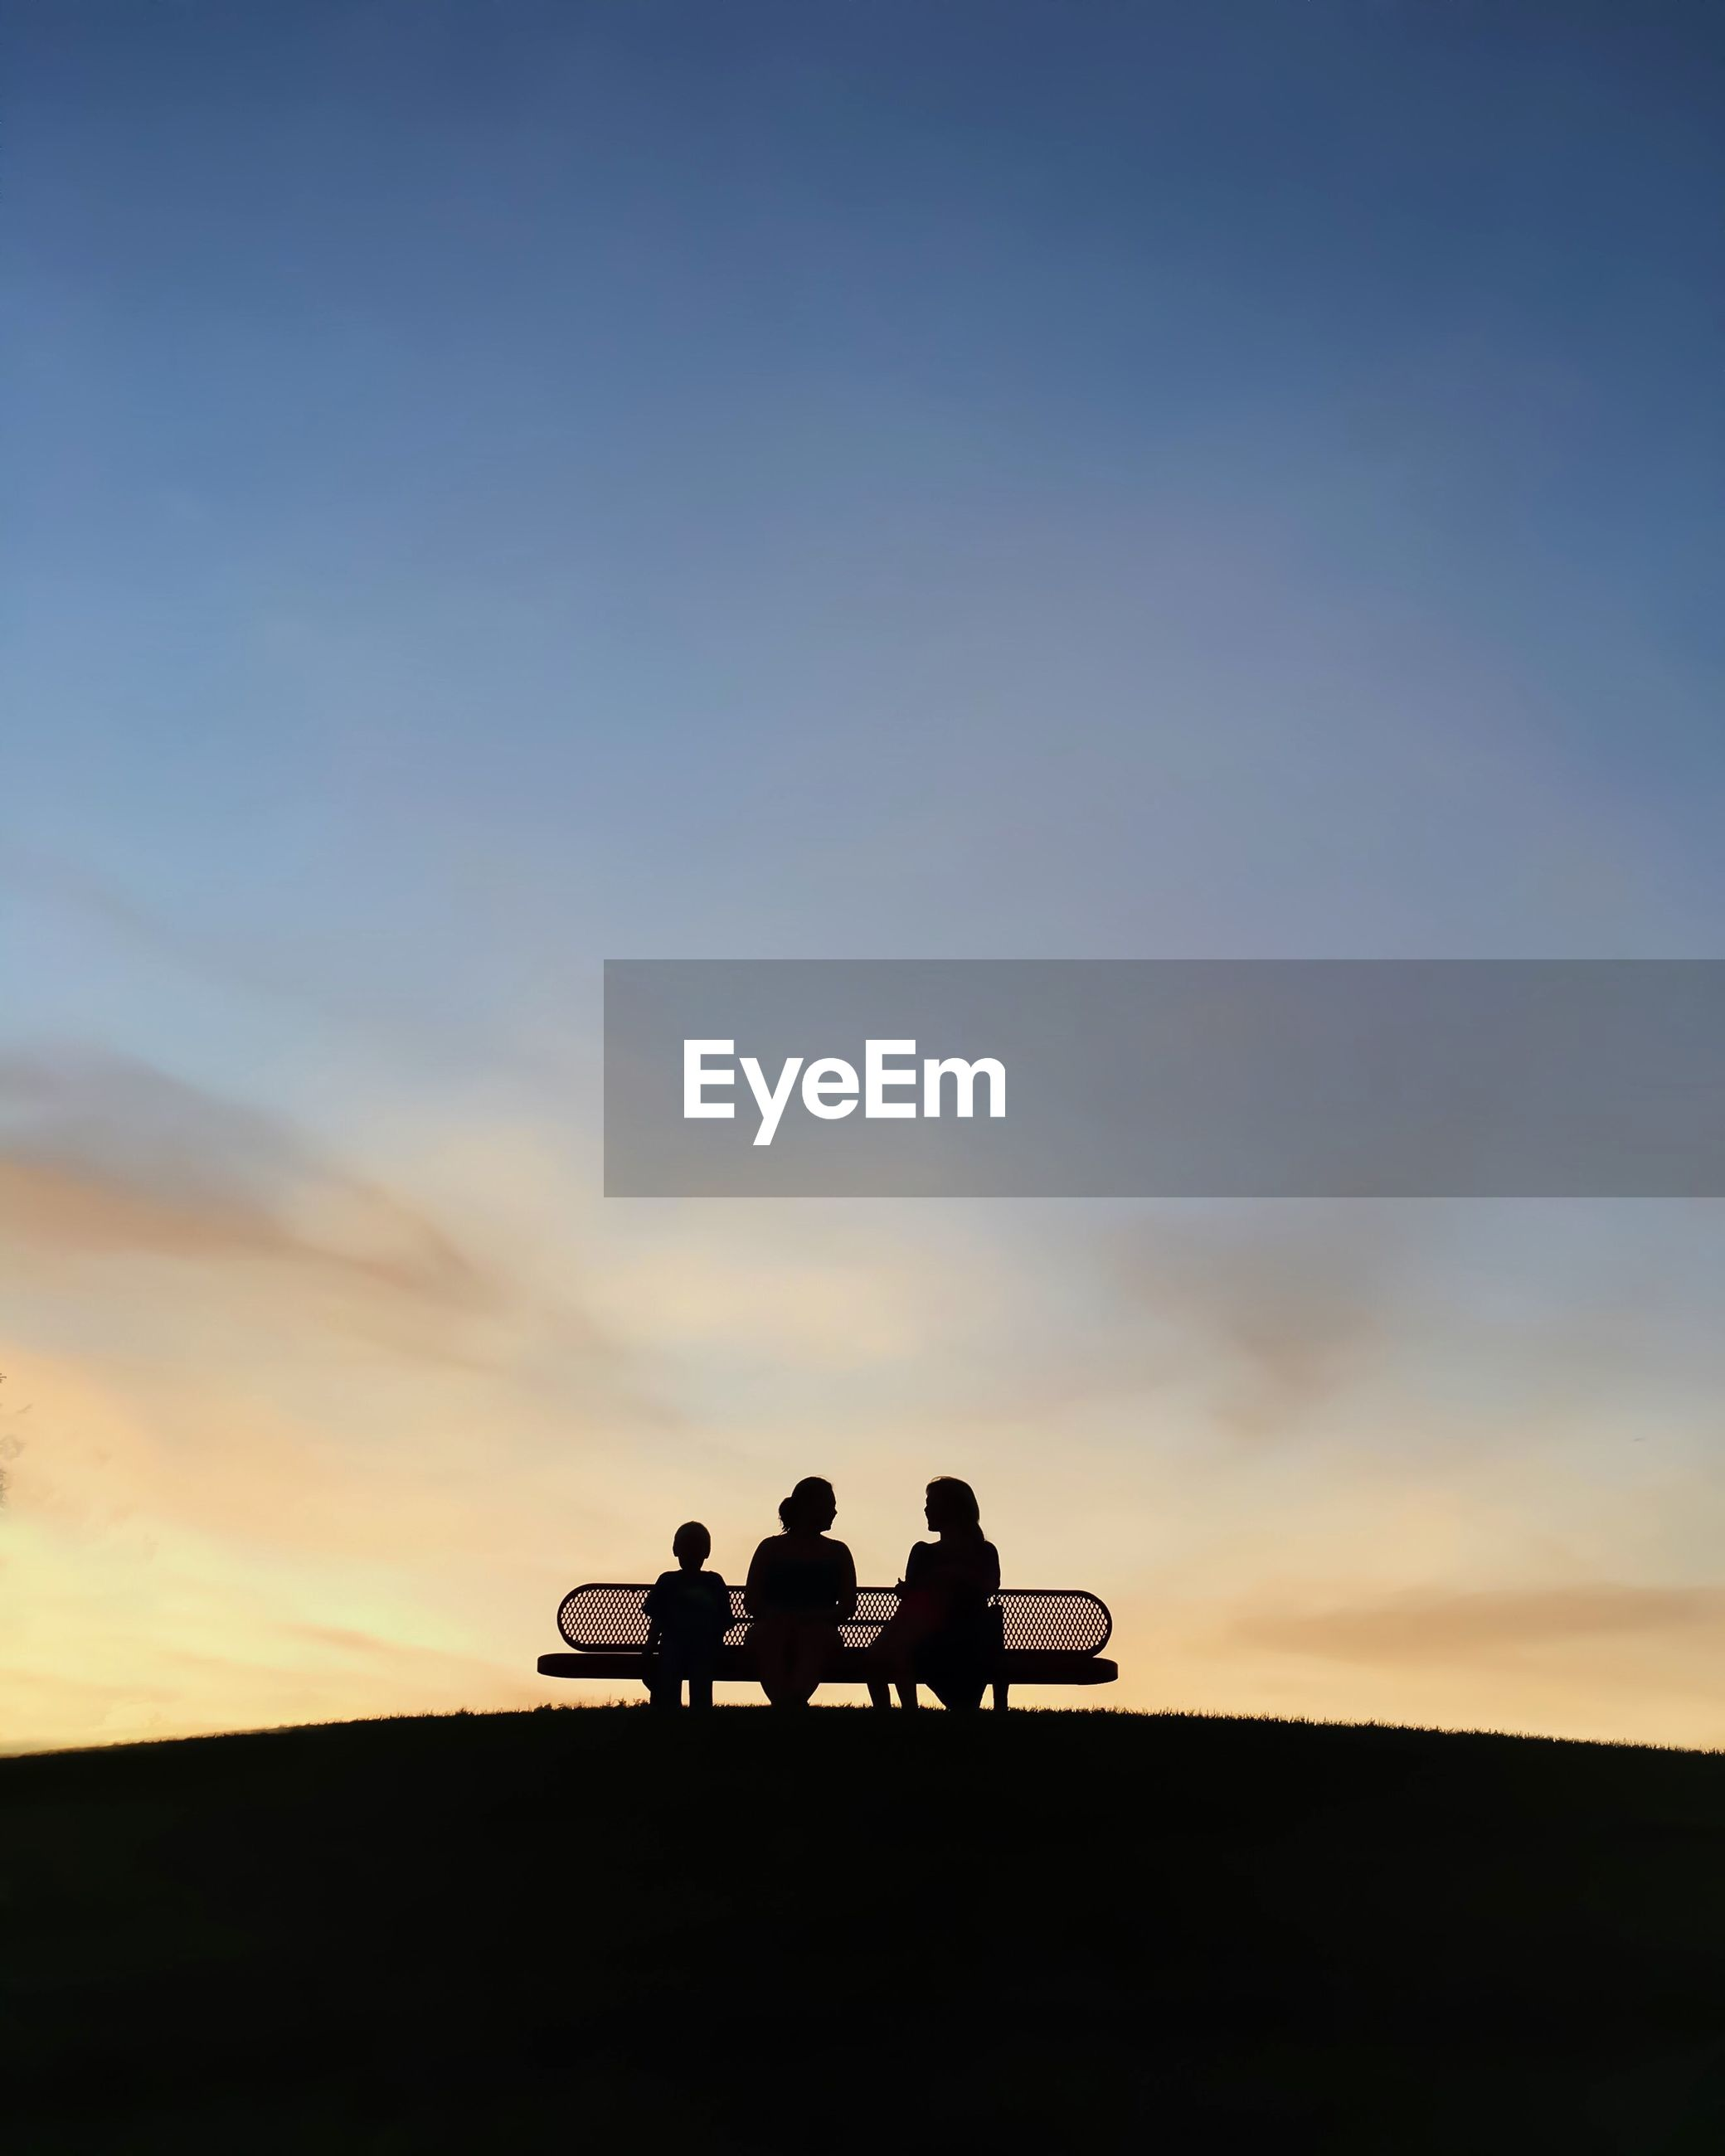 Silhouette people sitting on bench in park against sunset sky